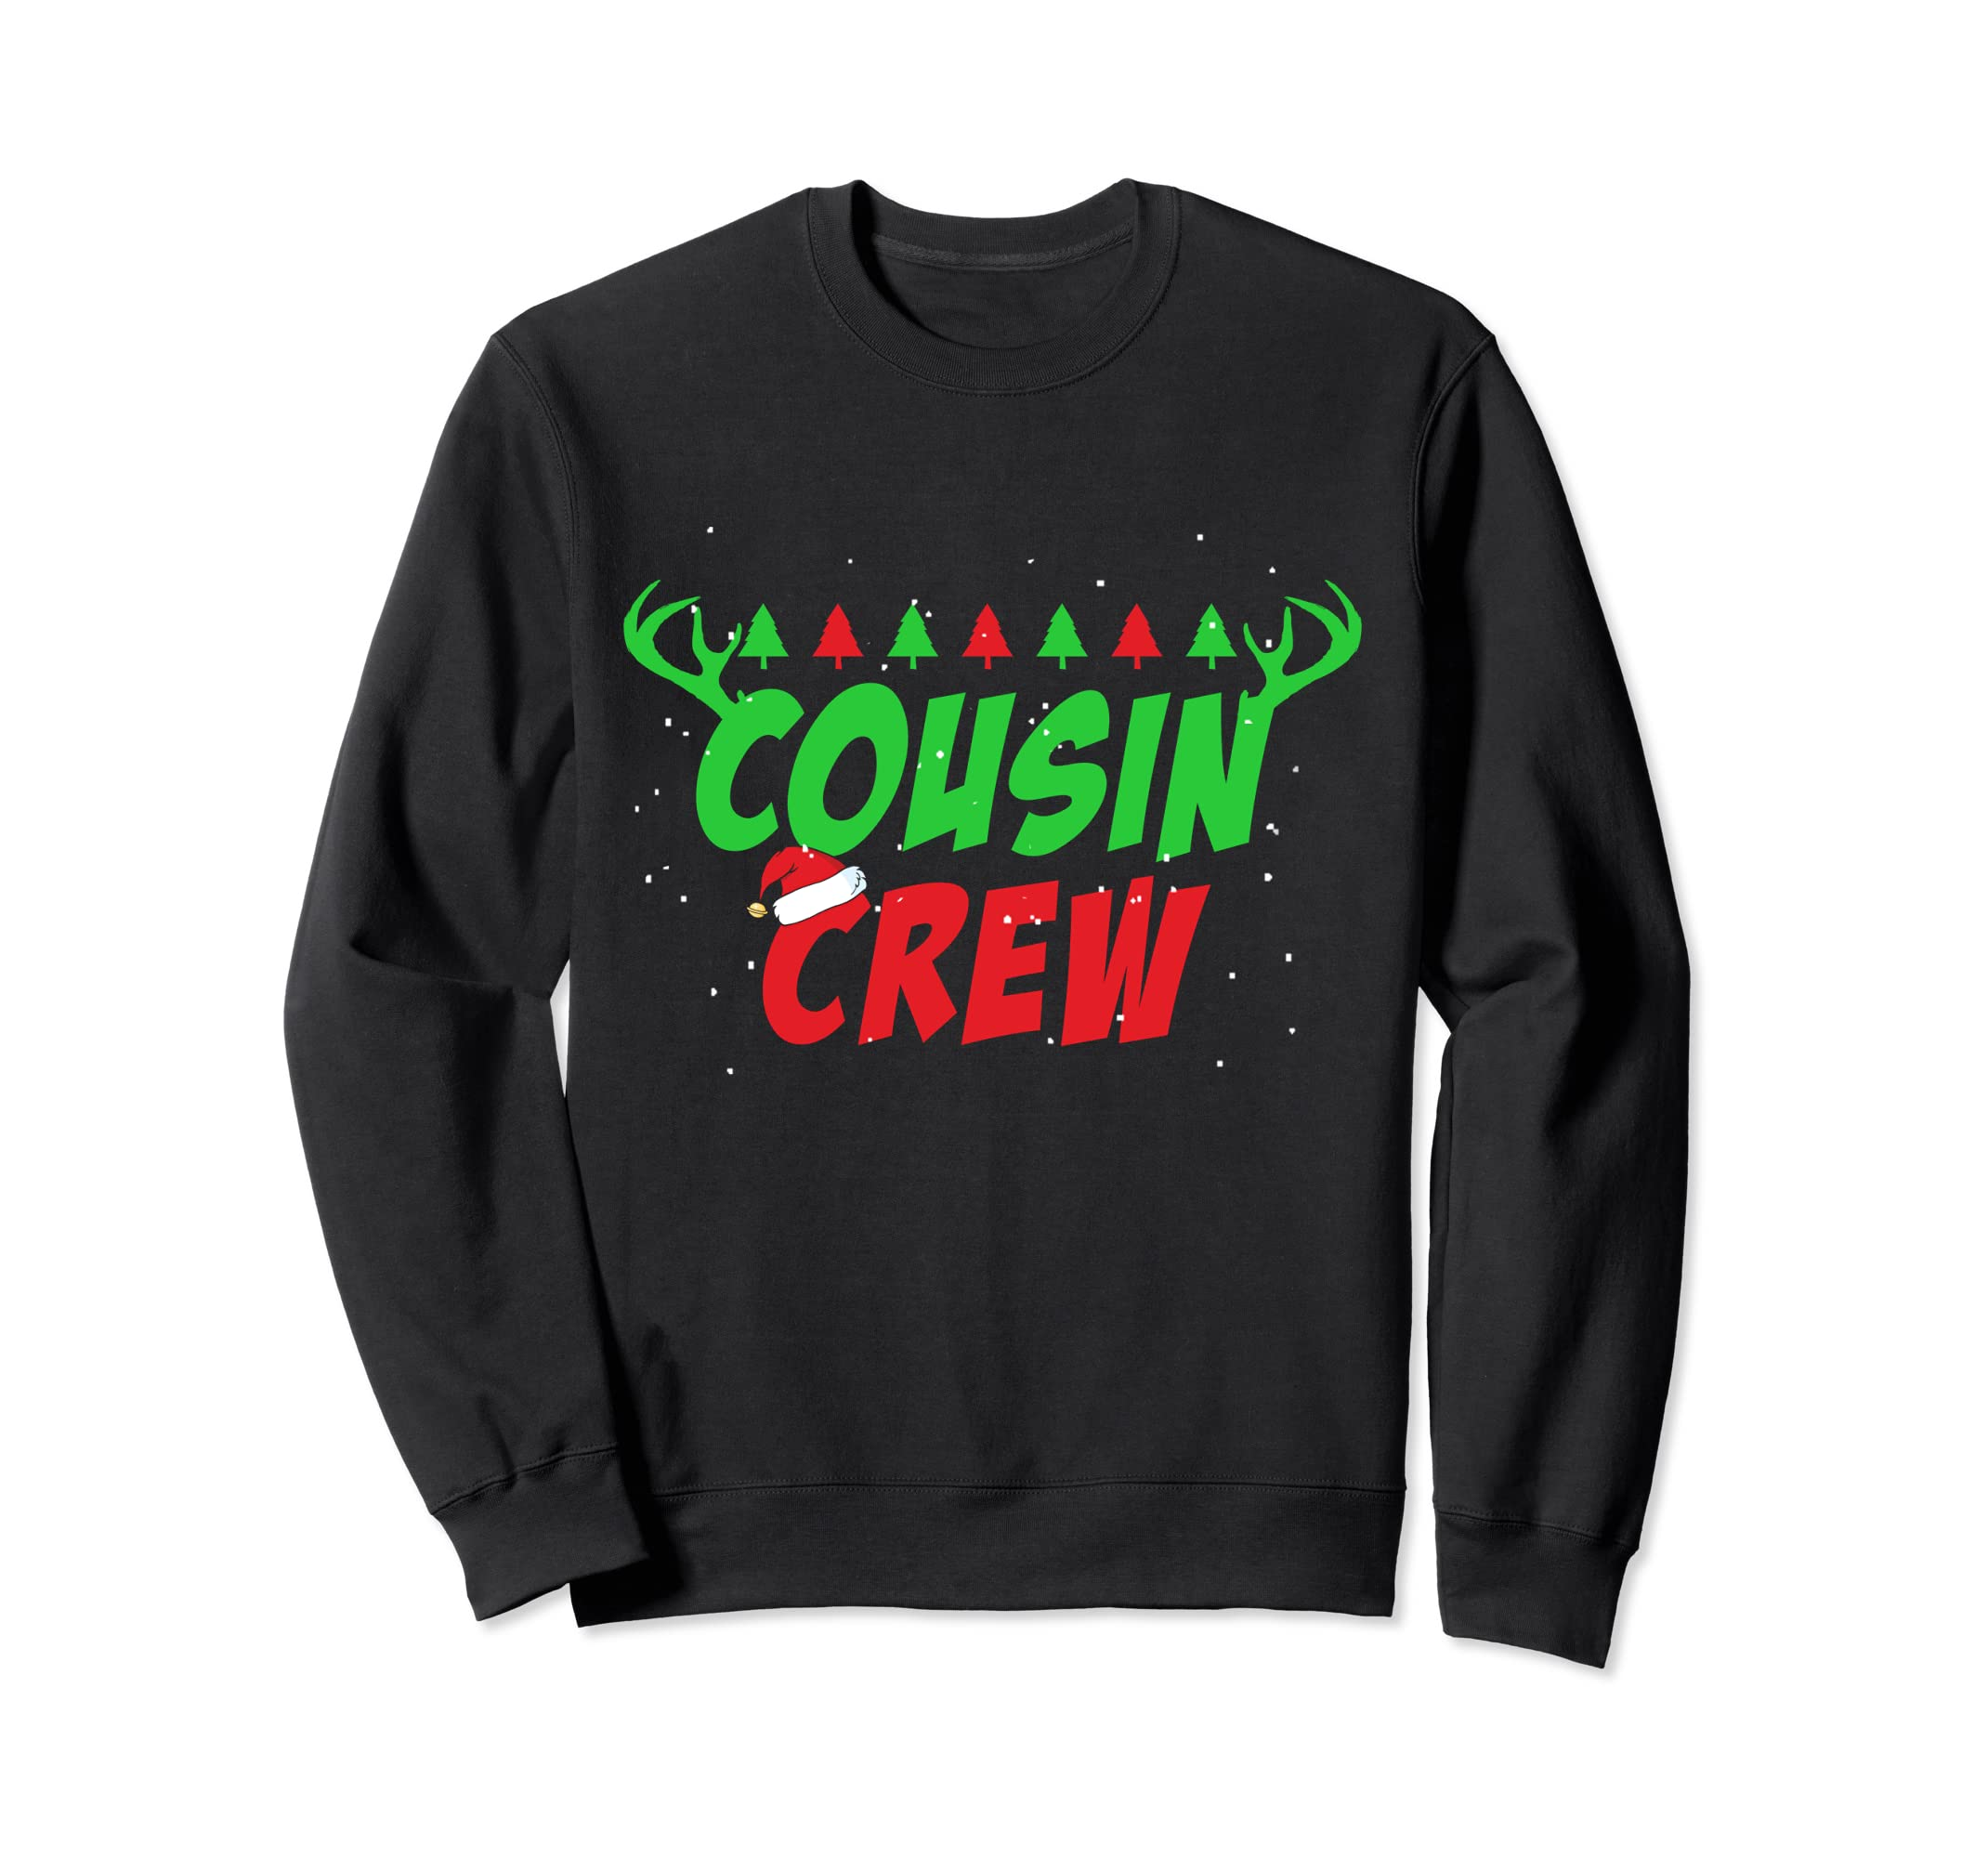 Cousin Crew ELF Sweatshirt Gift Family Matching Christmas Ug-SFL